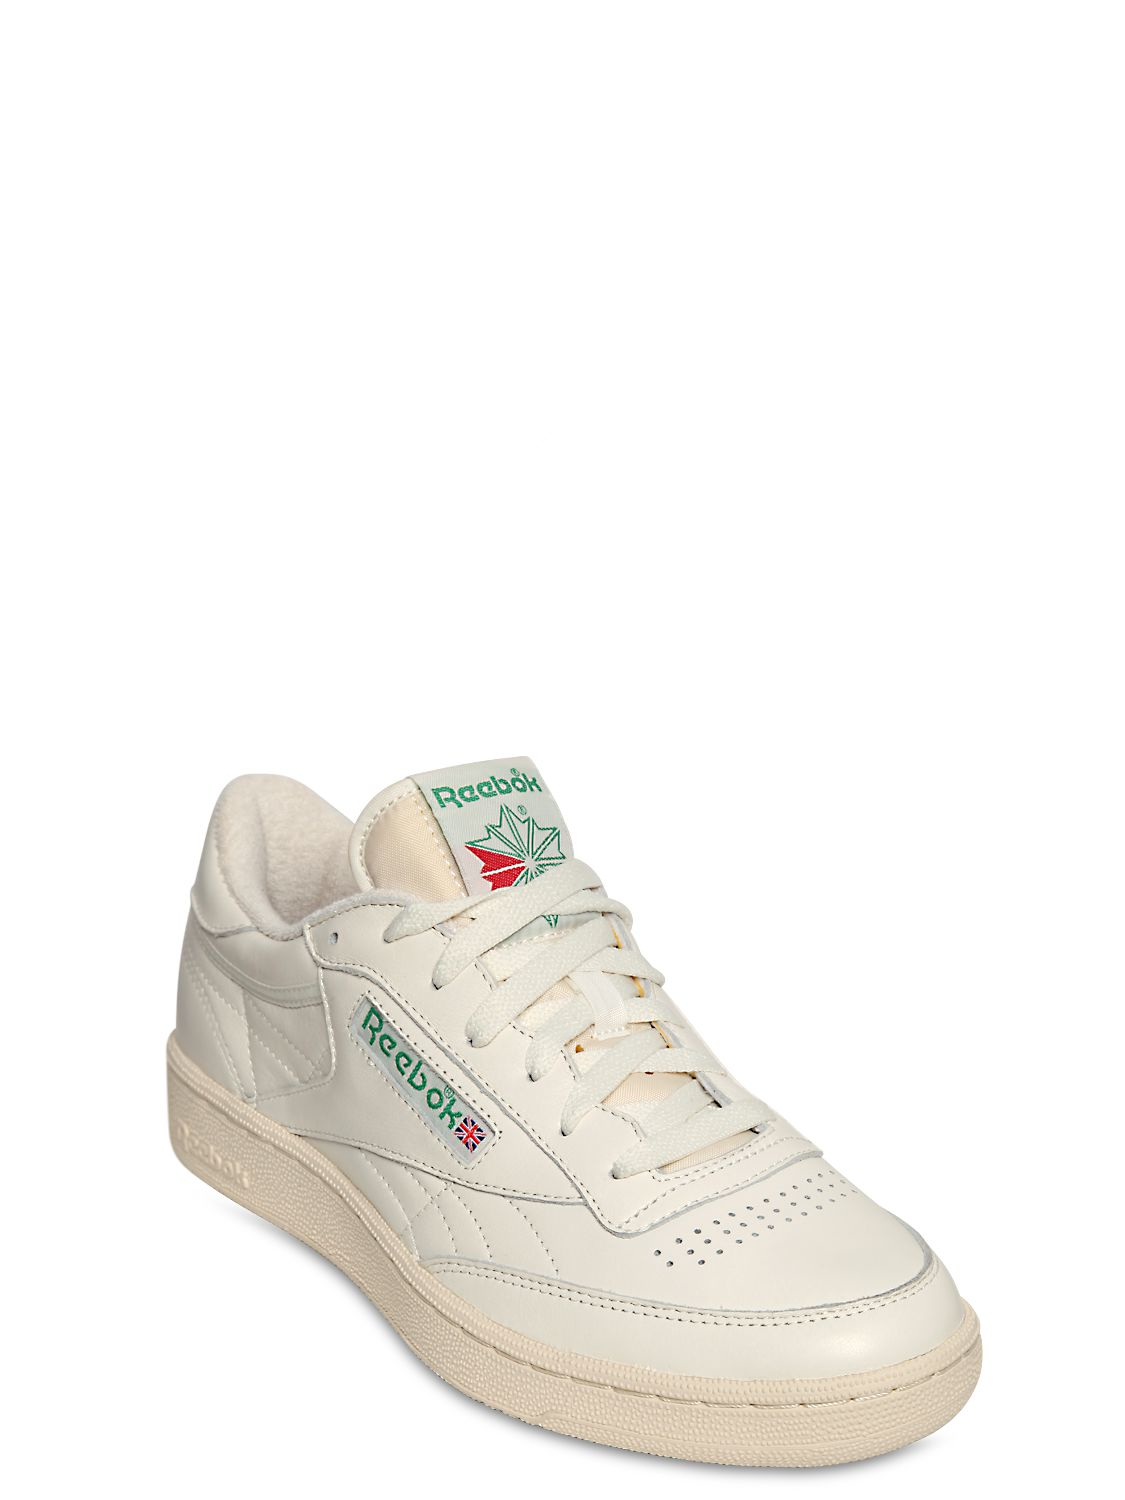 c104377dd ... cheapest lyst reebok club c 85 vintage leather low top sneakers in  white 7dd44 a3d81